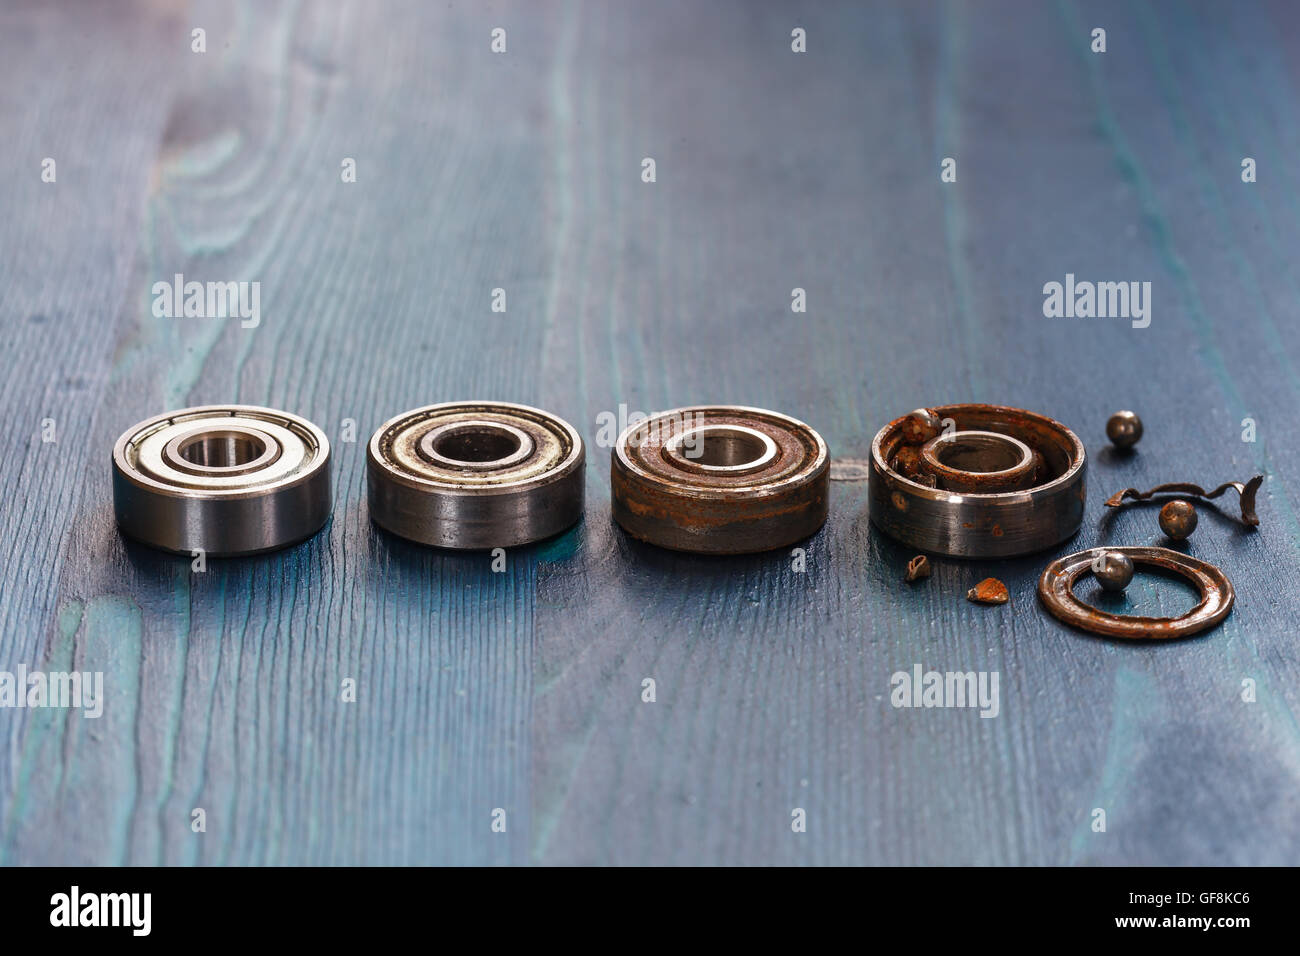 Spoiled collapsed and a new bearing for rollers and scooters - Stock Image